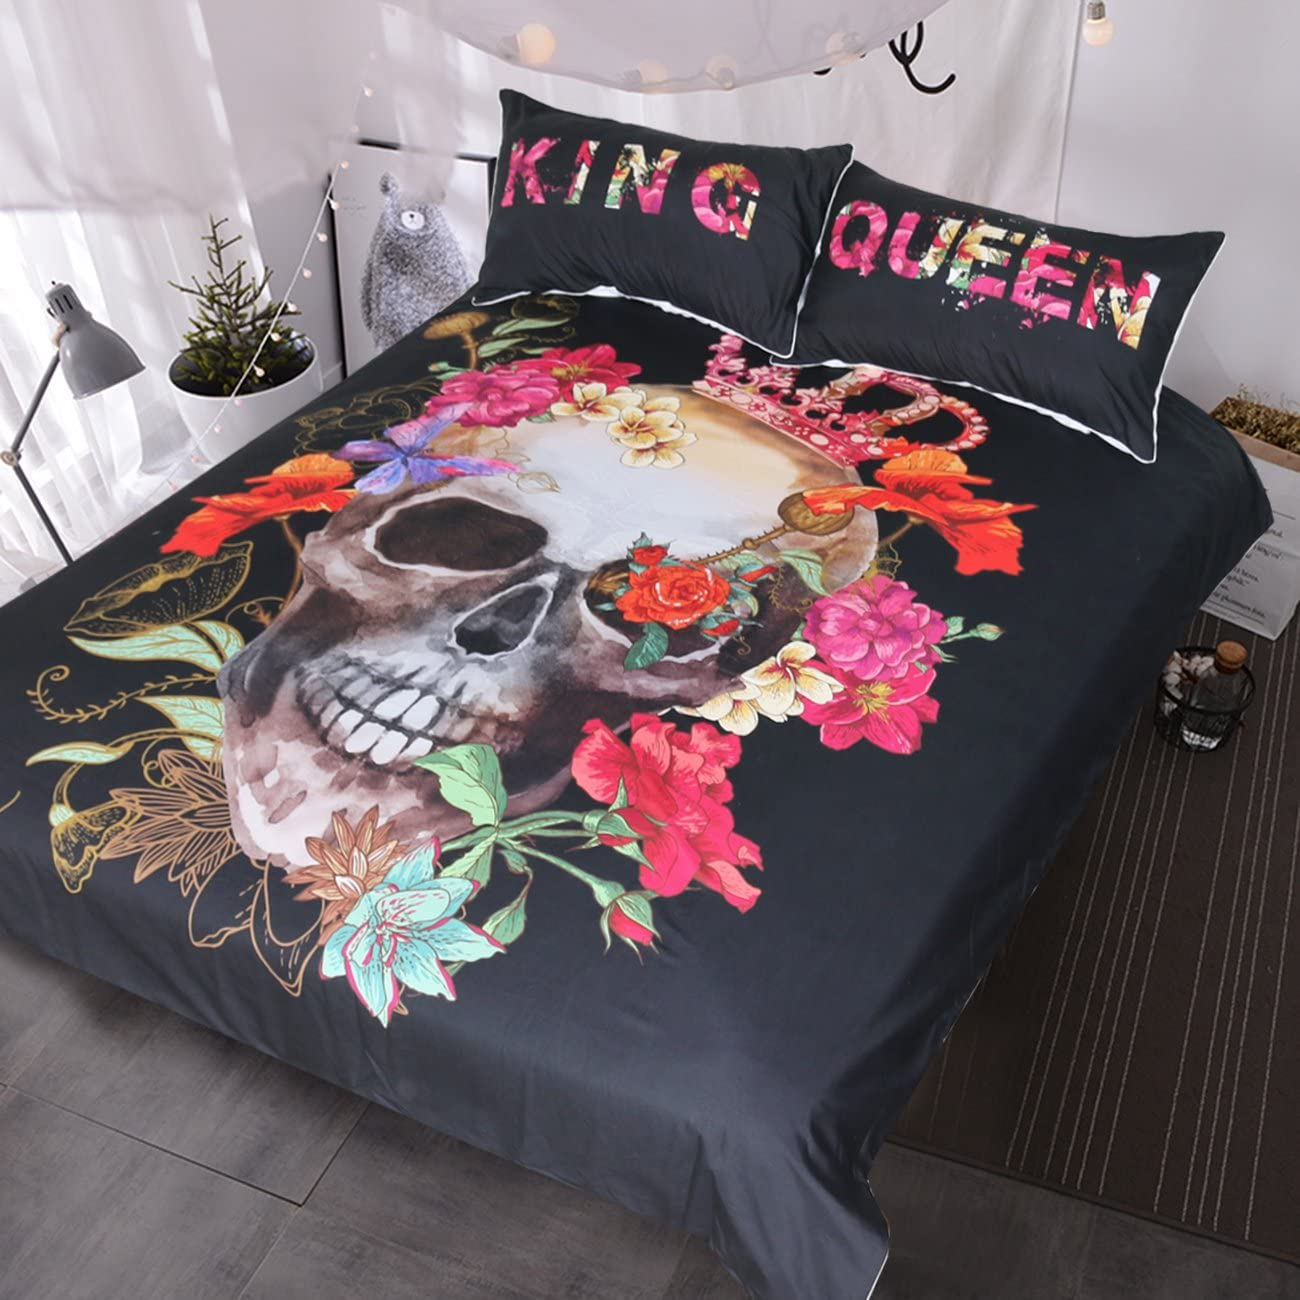 BlessLiving Skull Roses Bedding Queen Size 3 Pieces Sugar Skull Duvet Cover with 2 Queen and King Print Pillow Cases Couples Bedding Skull Bedset